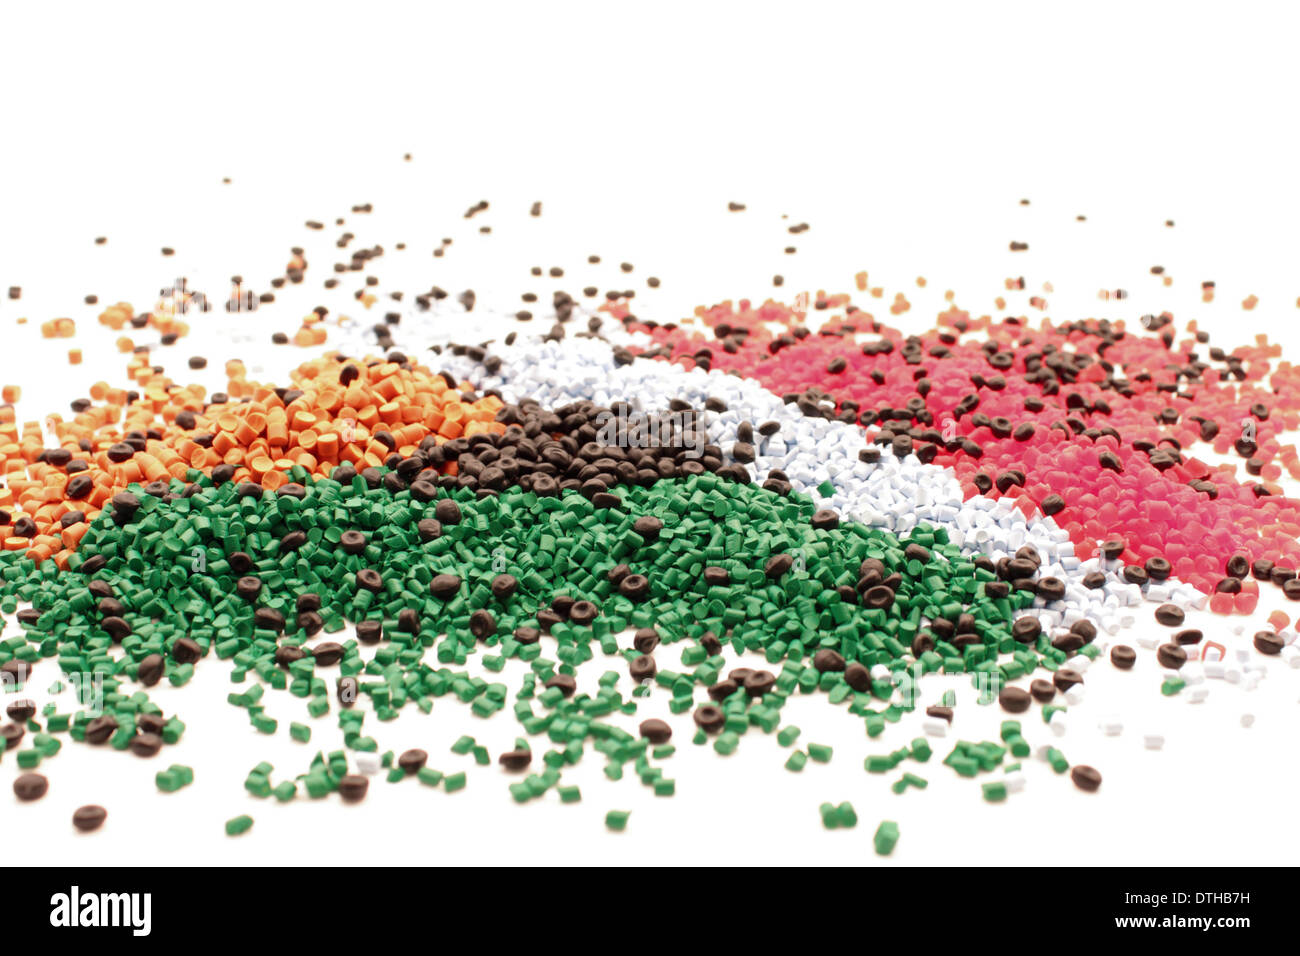 Background of polymers, many colors plastic. Stock Photo